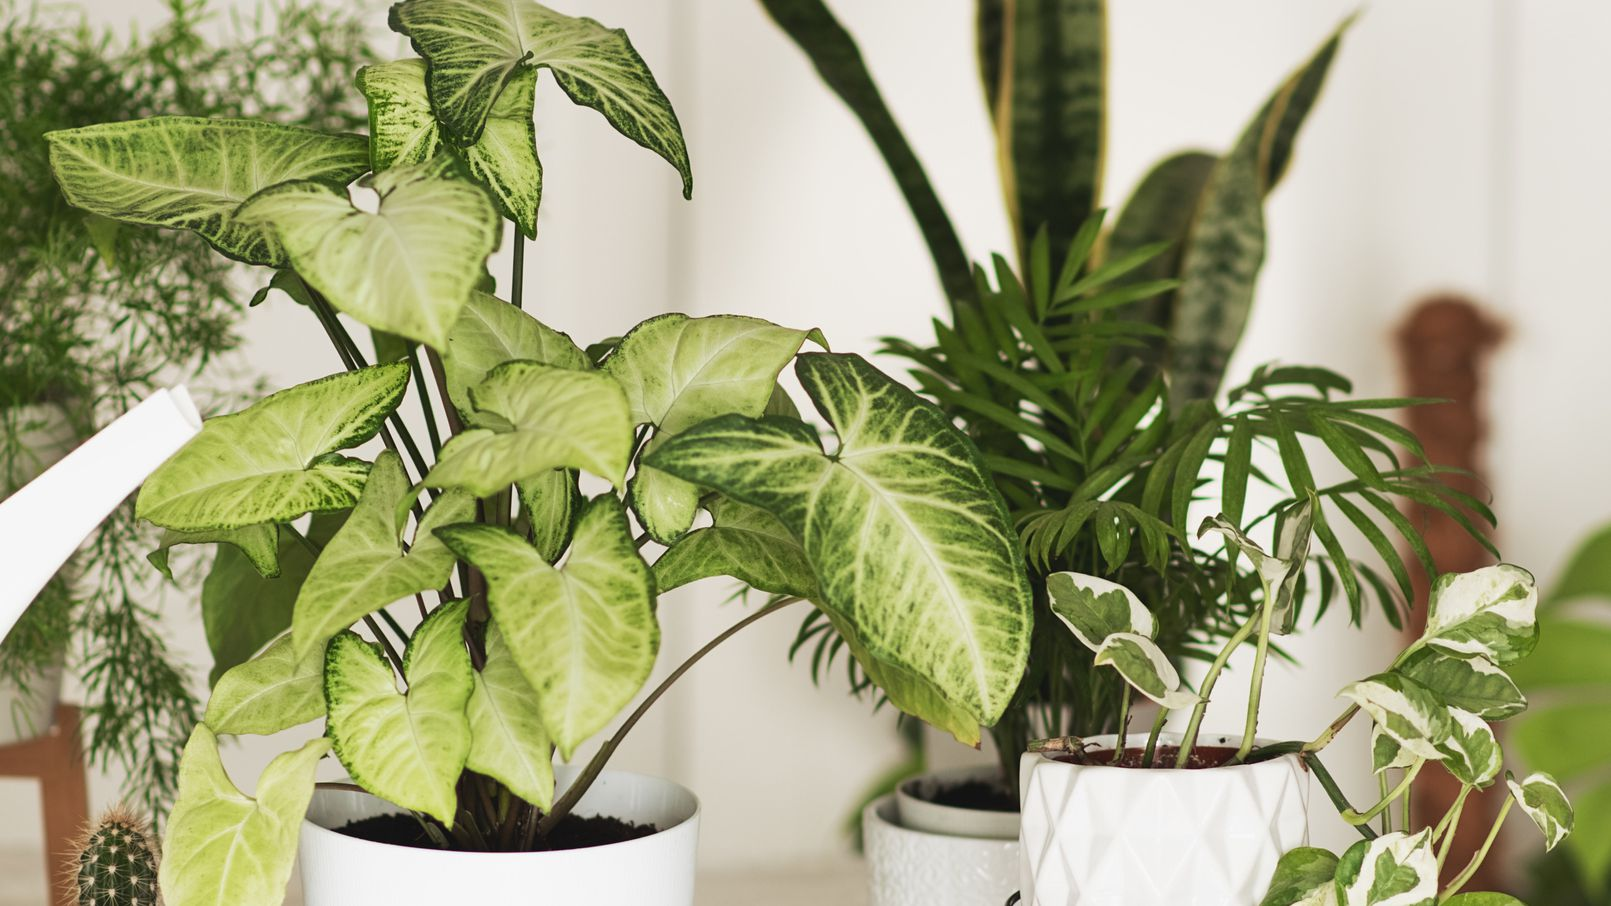 5 Rare Plants That Are Totally Worth The Splurge